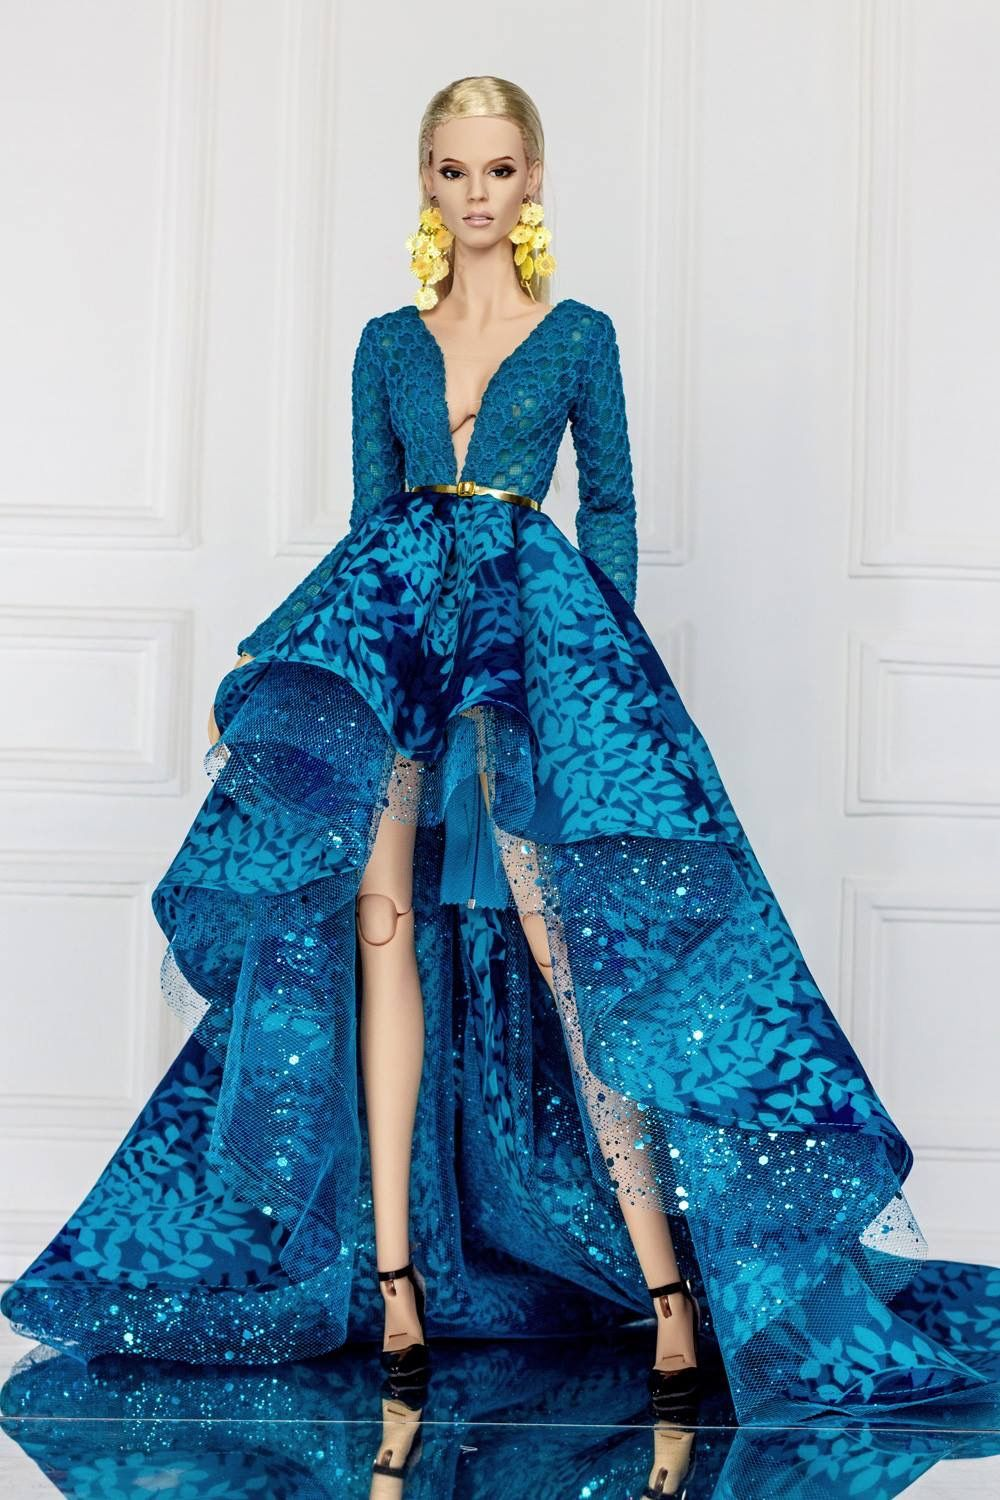 Loving this dramatic blue gown on \